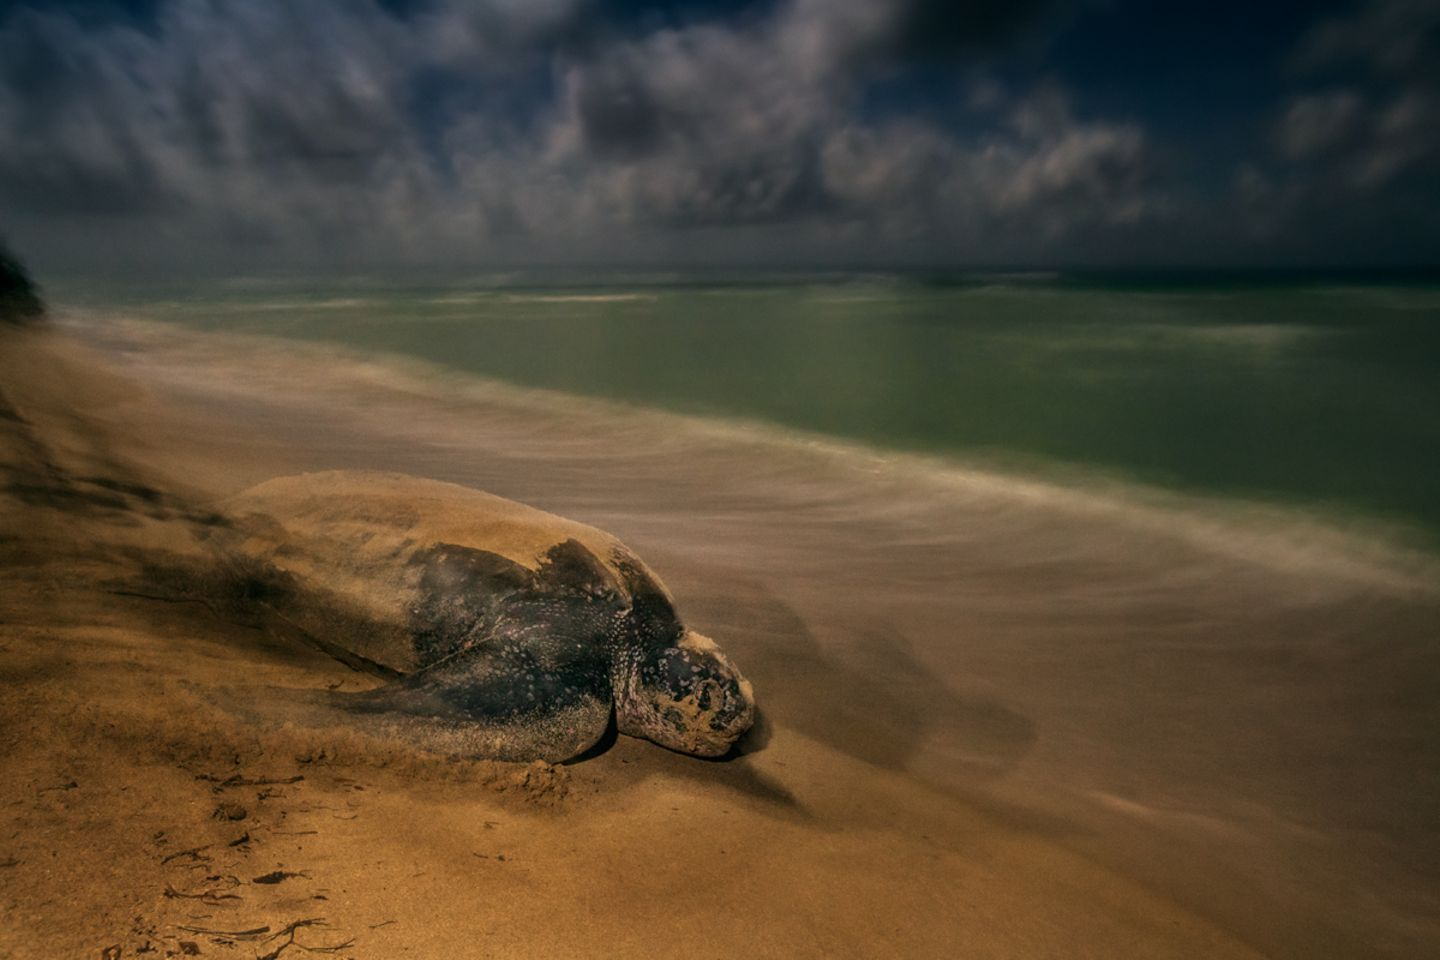 Brian Skerry, Wildlife Photographer of the Year